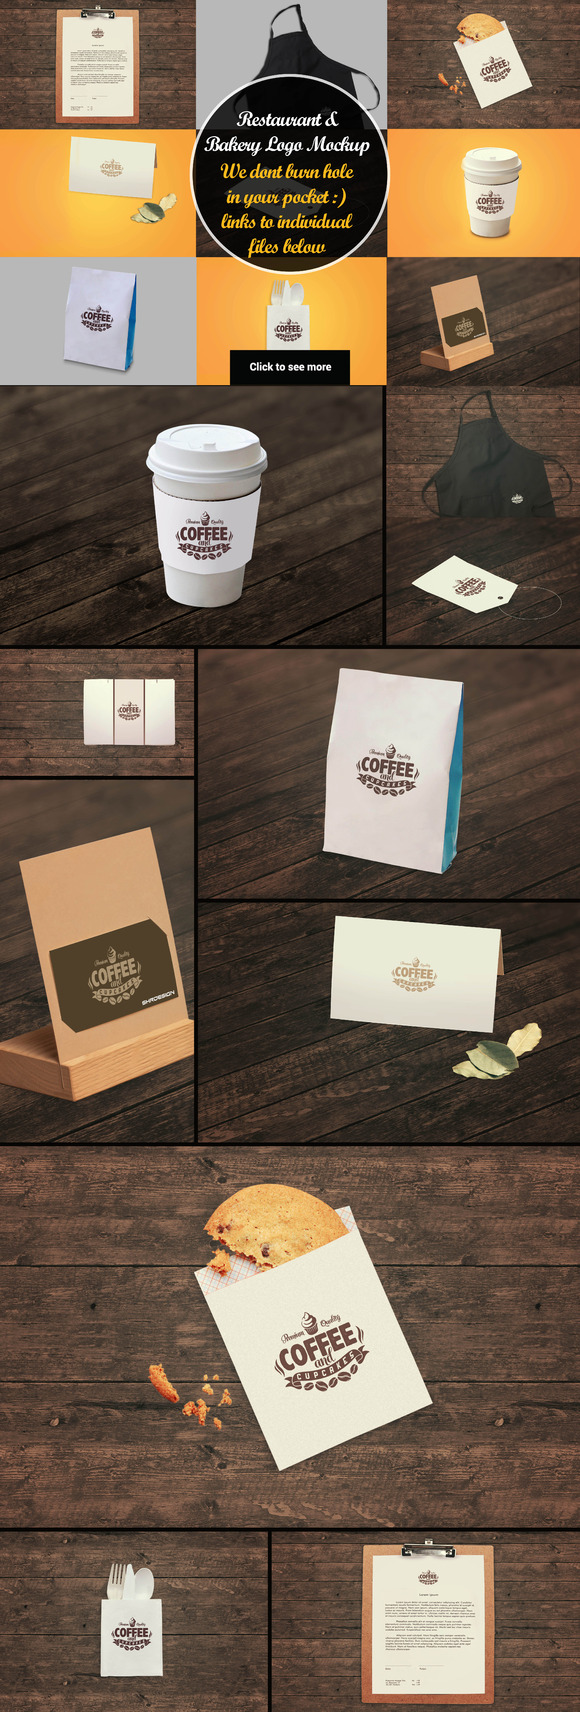 10 Restaurant Mockup Bundle